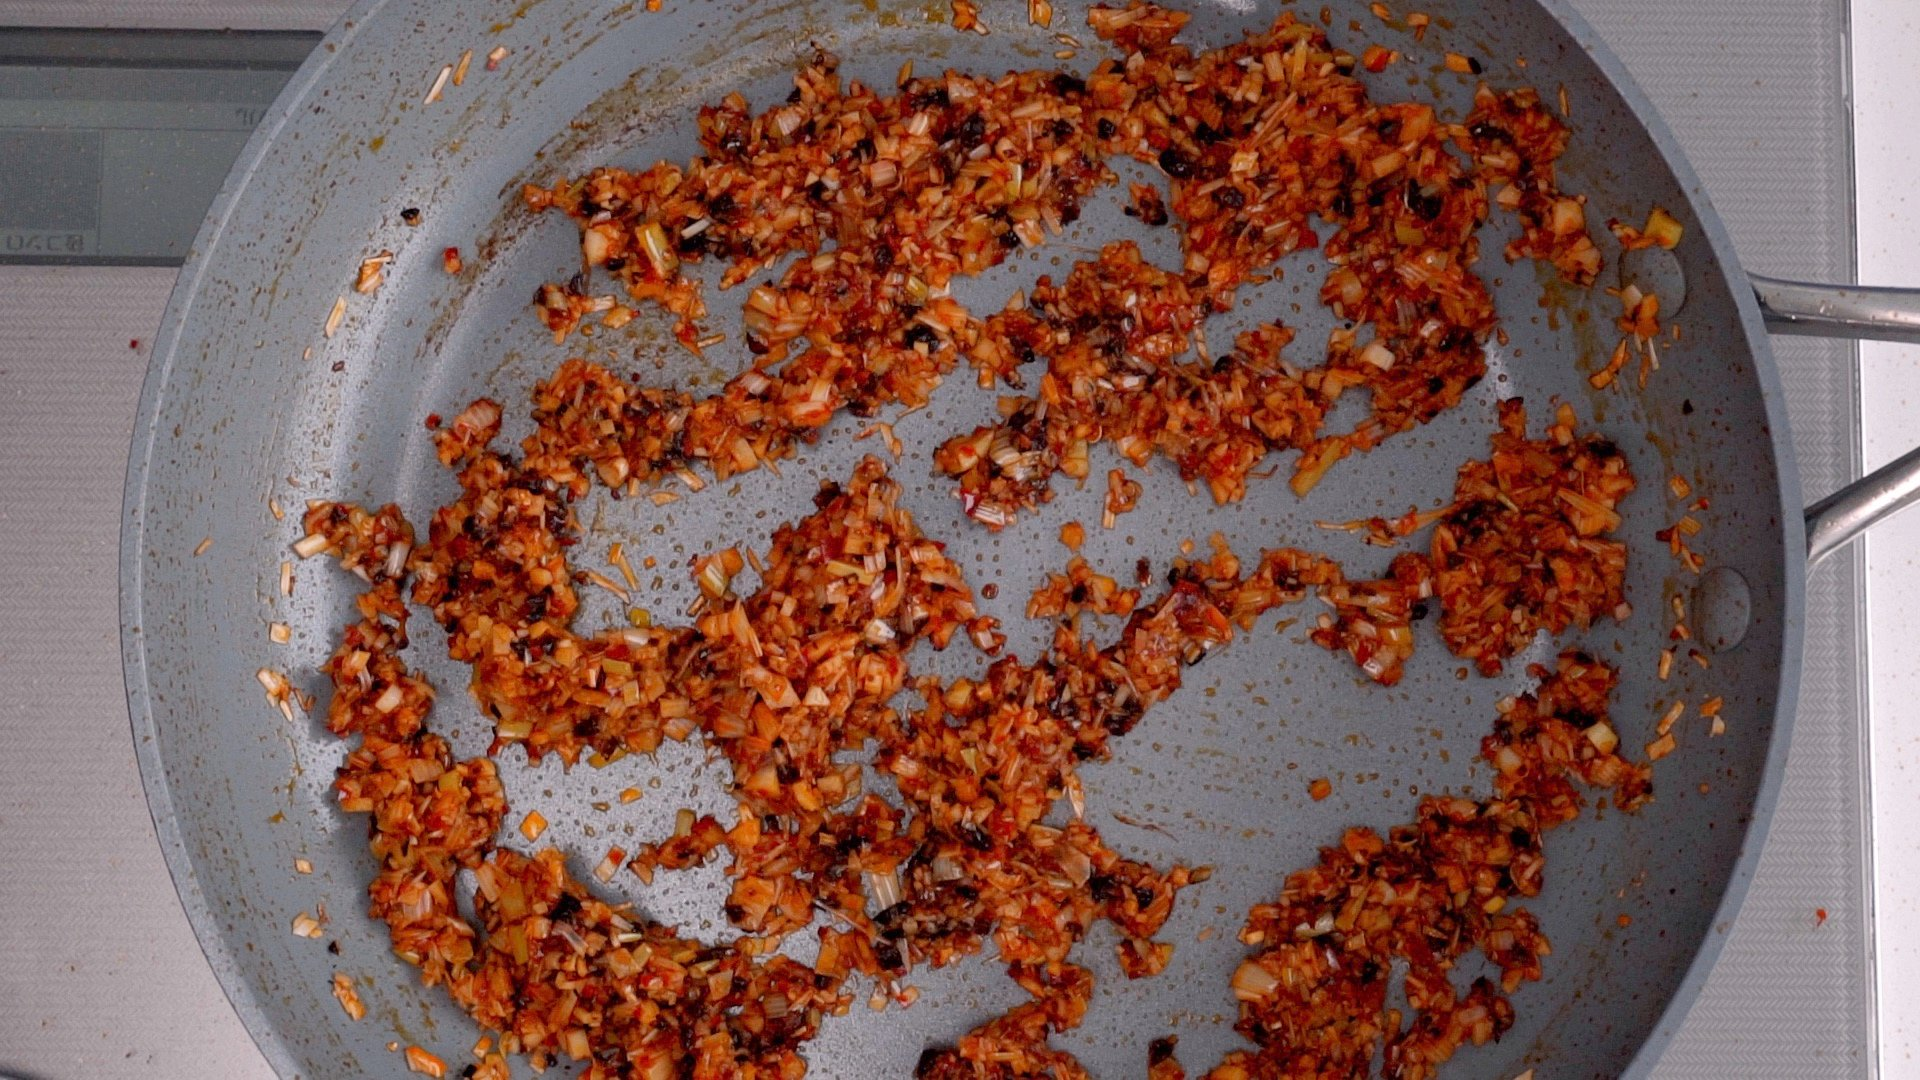 Add the aromatics and stir-fry until they are caramelized.